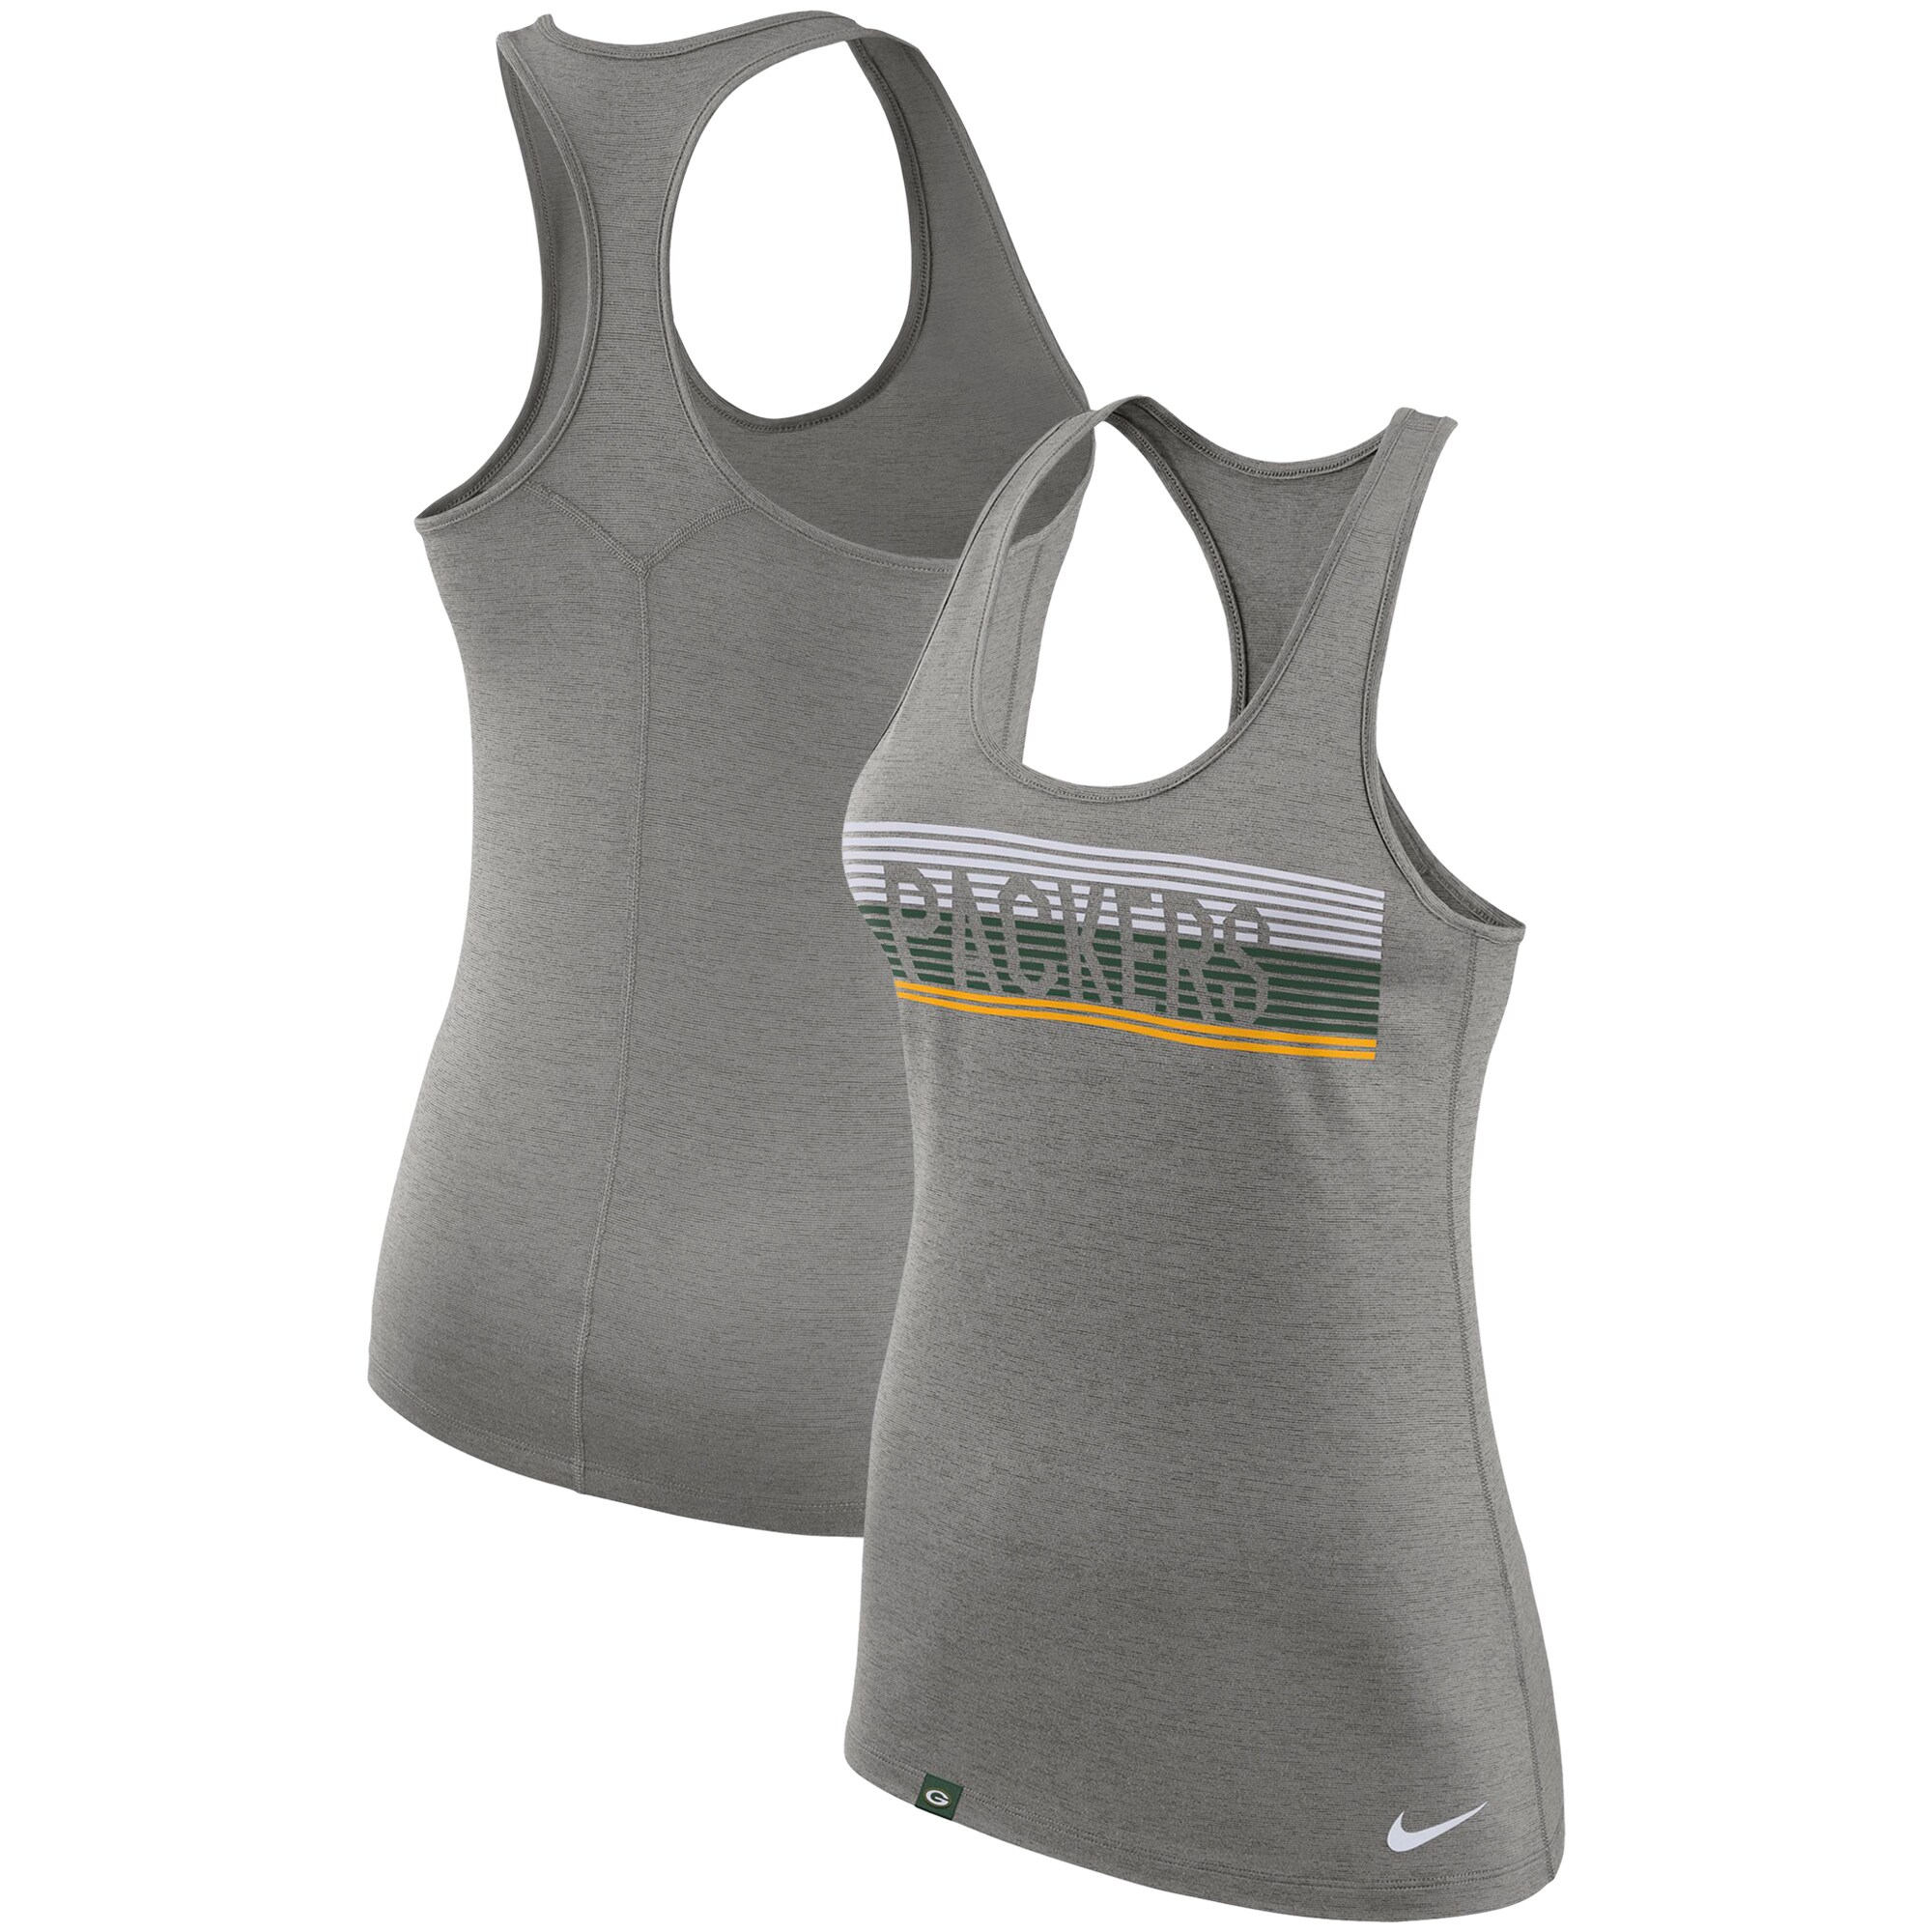 Green Bay Packers Nike Women's Touch Performance Tank Top - Heathered Charcoal